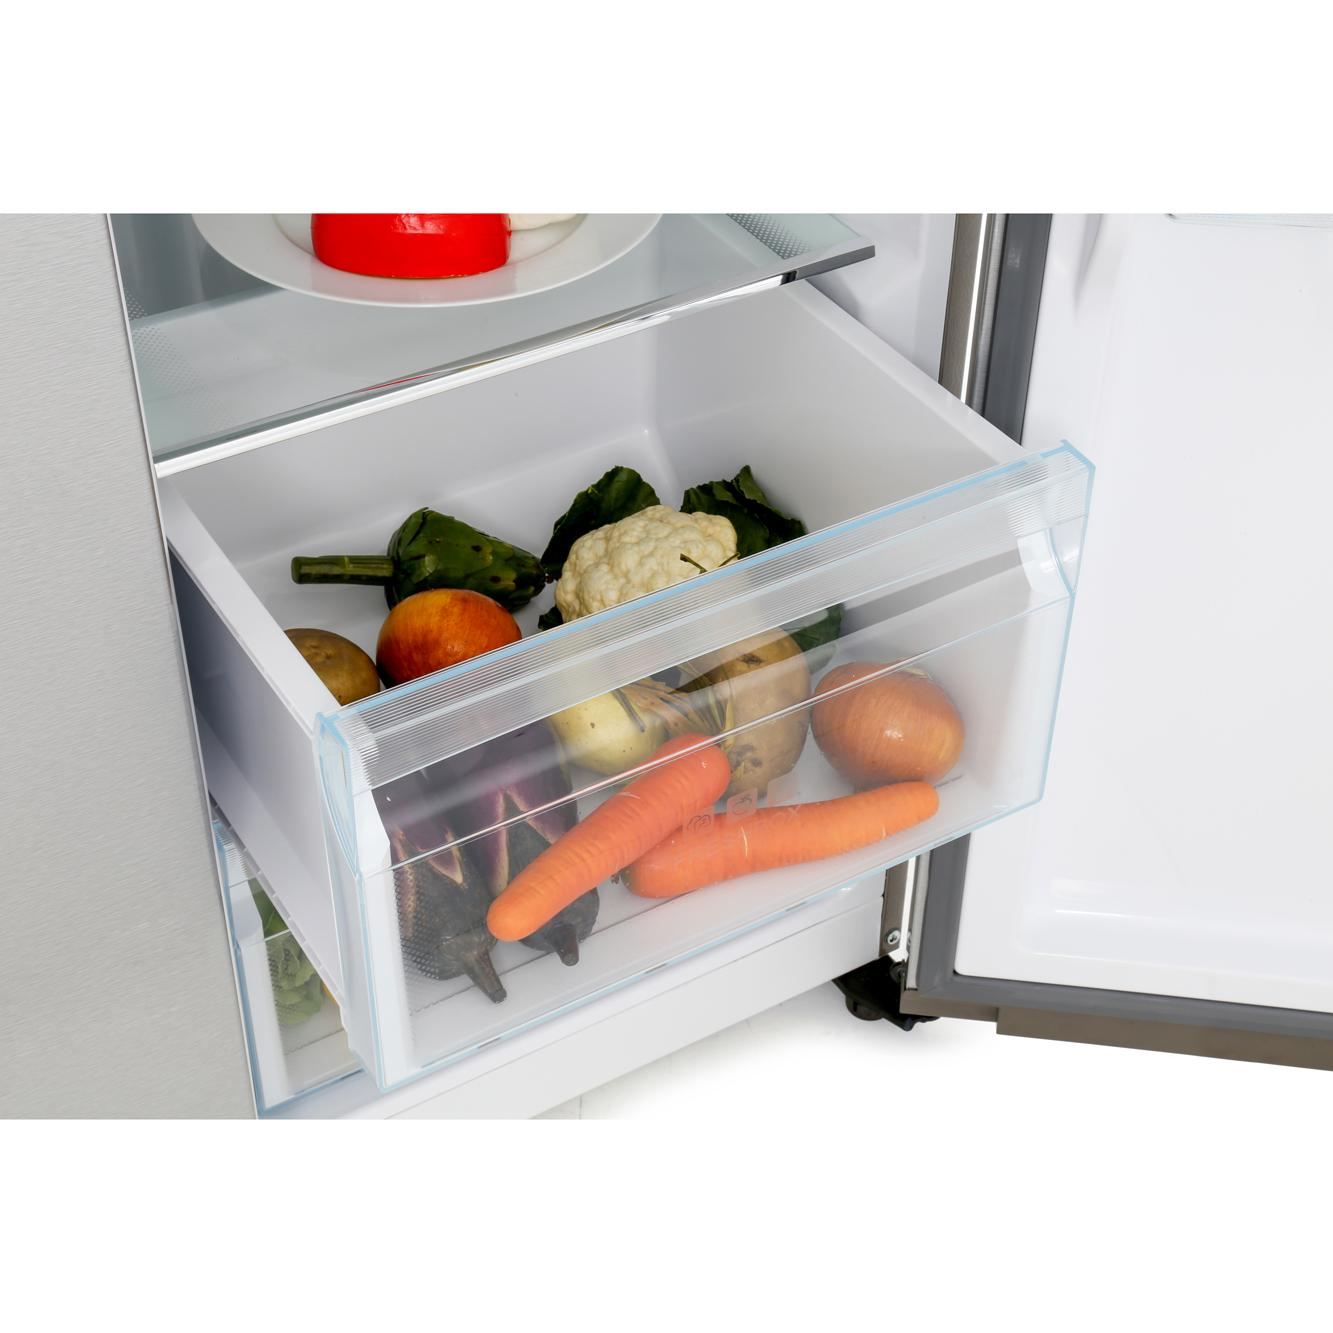 Haier Hrf-521ds6 Buy Haier Hrf 521ds6 American Fridge Freezer Silver